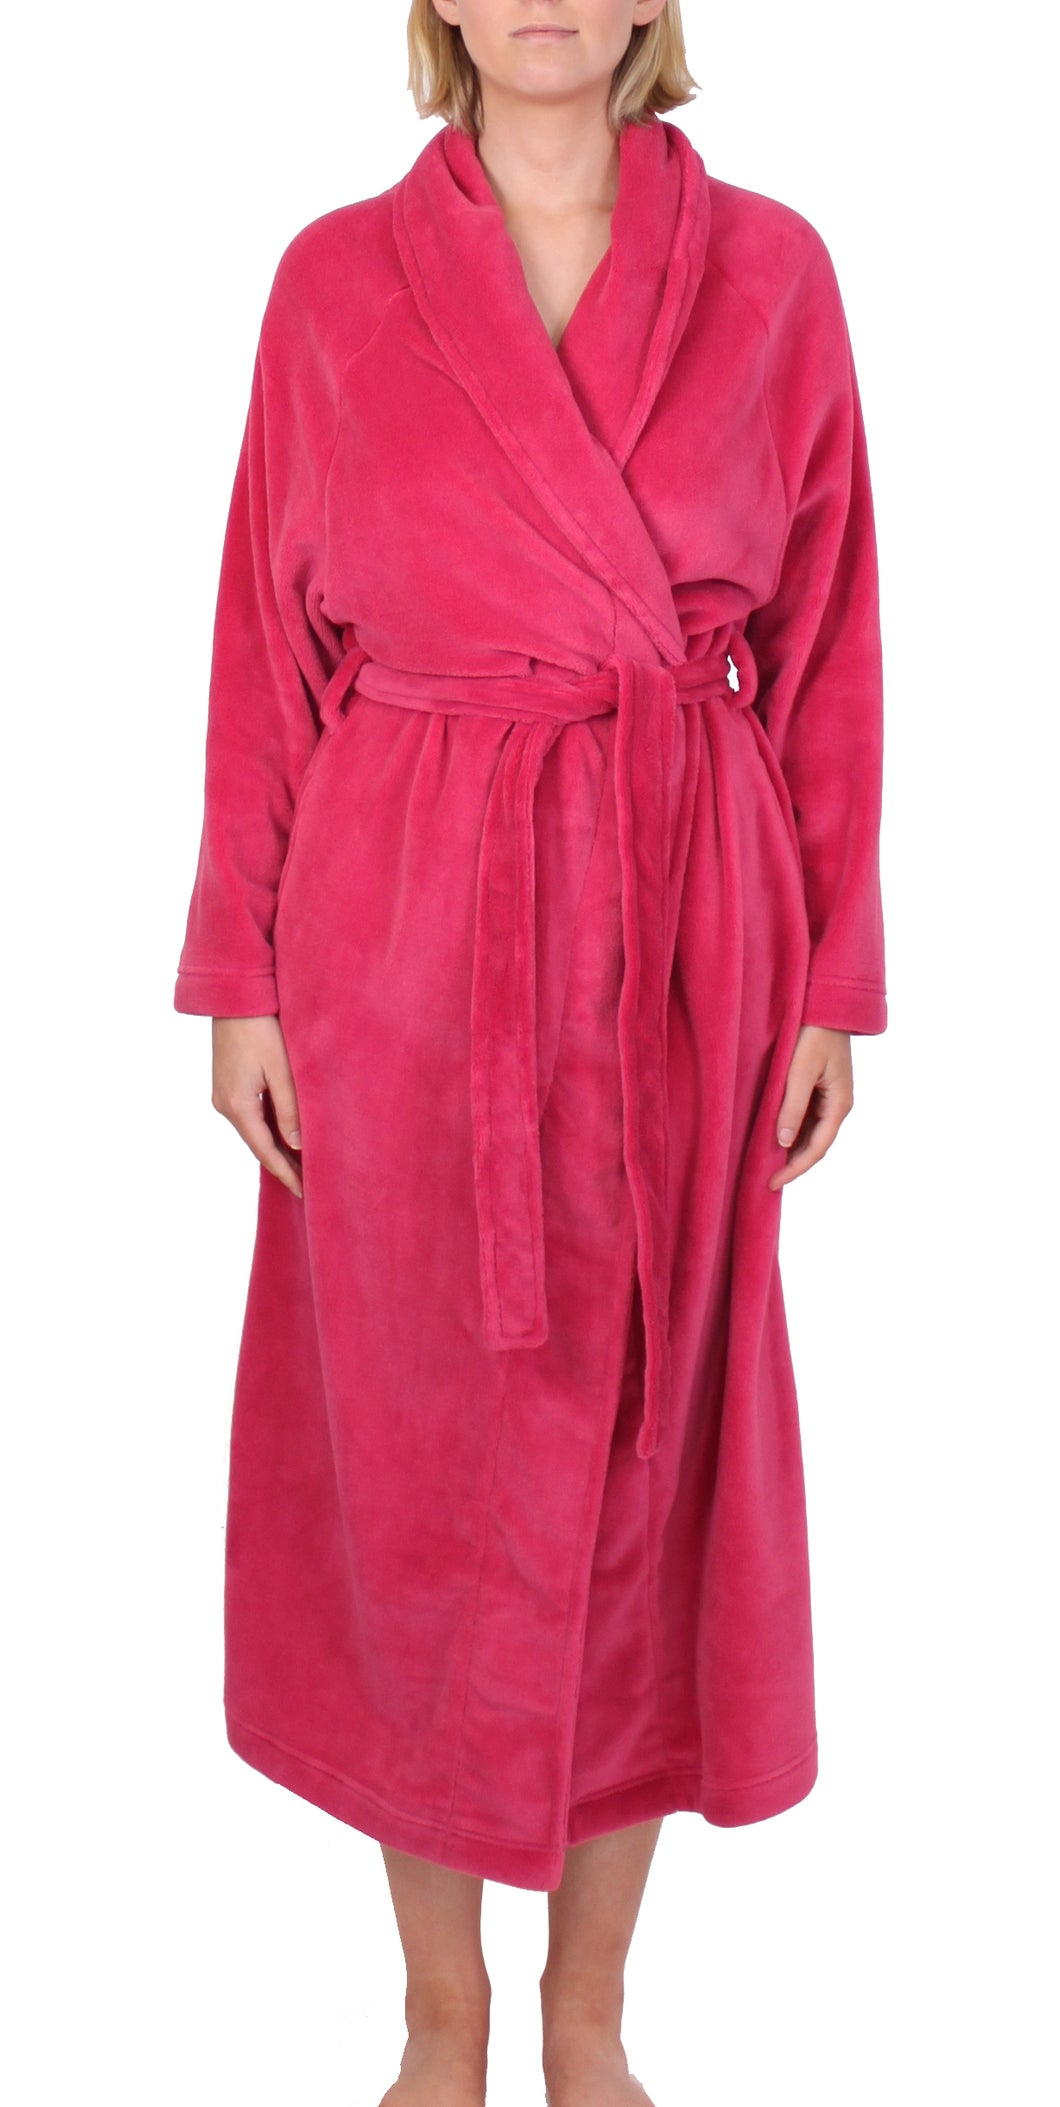 Luxury Robe Rose - 8801-5002B